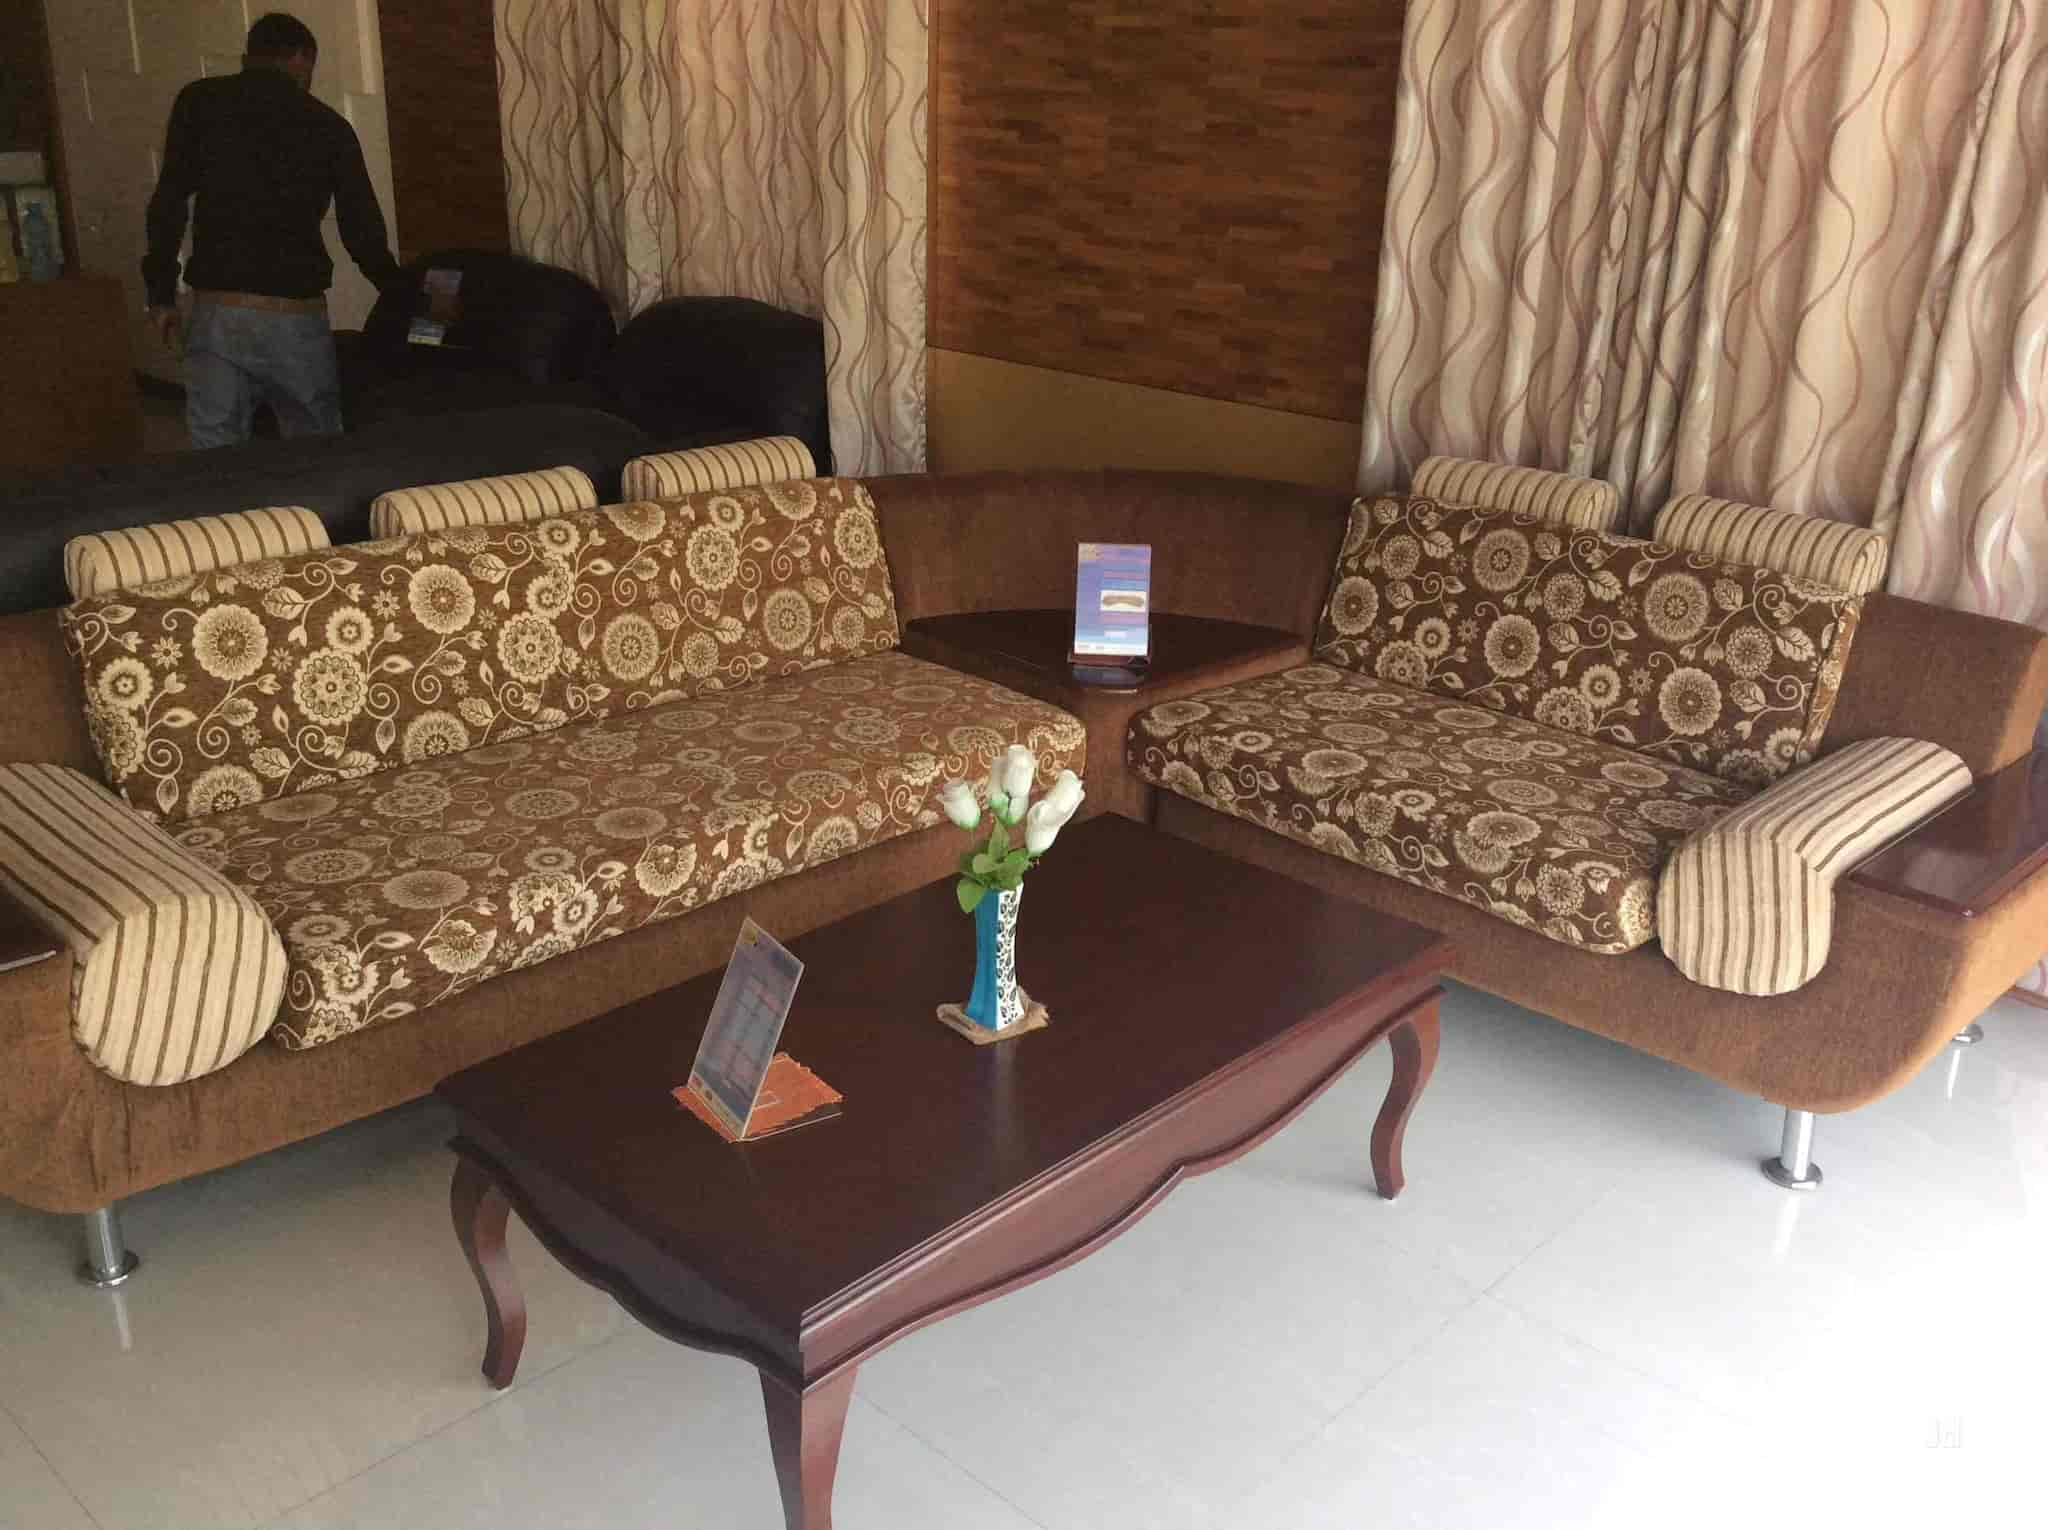 Erode Best Furniture Surampatti Furniture Dealers In Erode Justdial